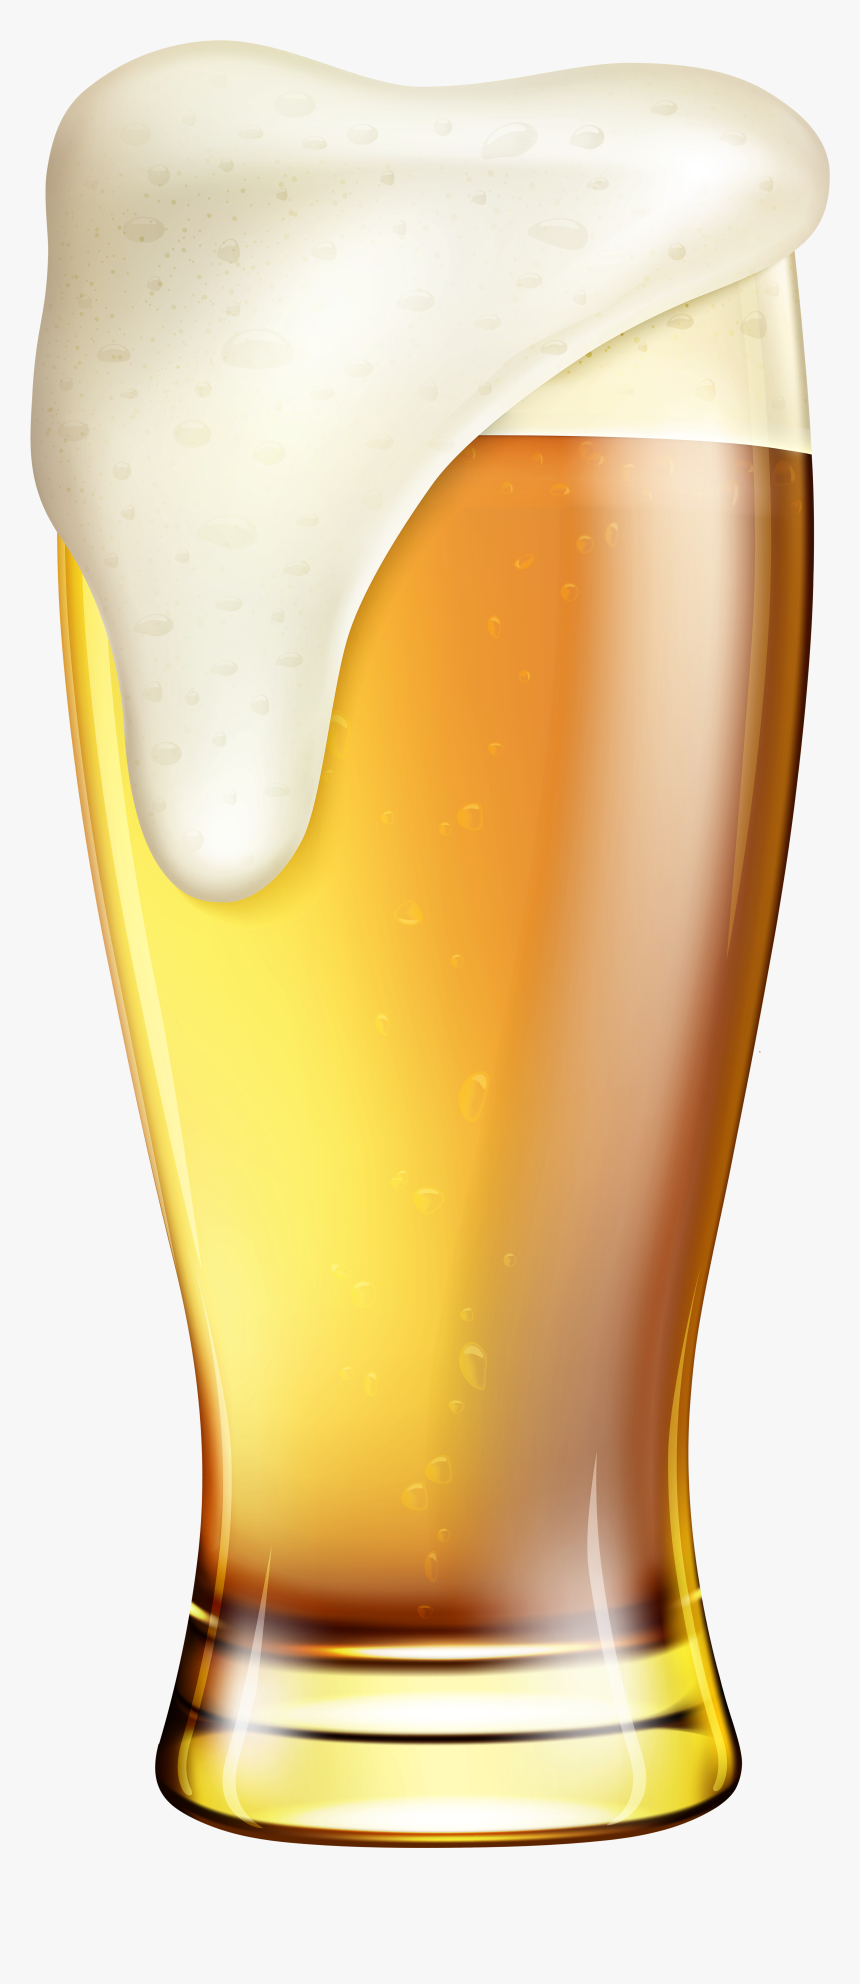 Beer Clipart High Resolution - Glass Of Beer Clipart, HD Png Download, Free Download